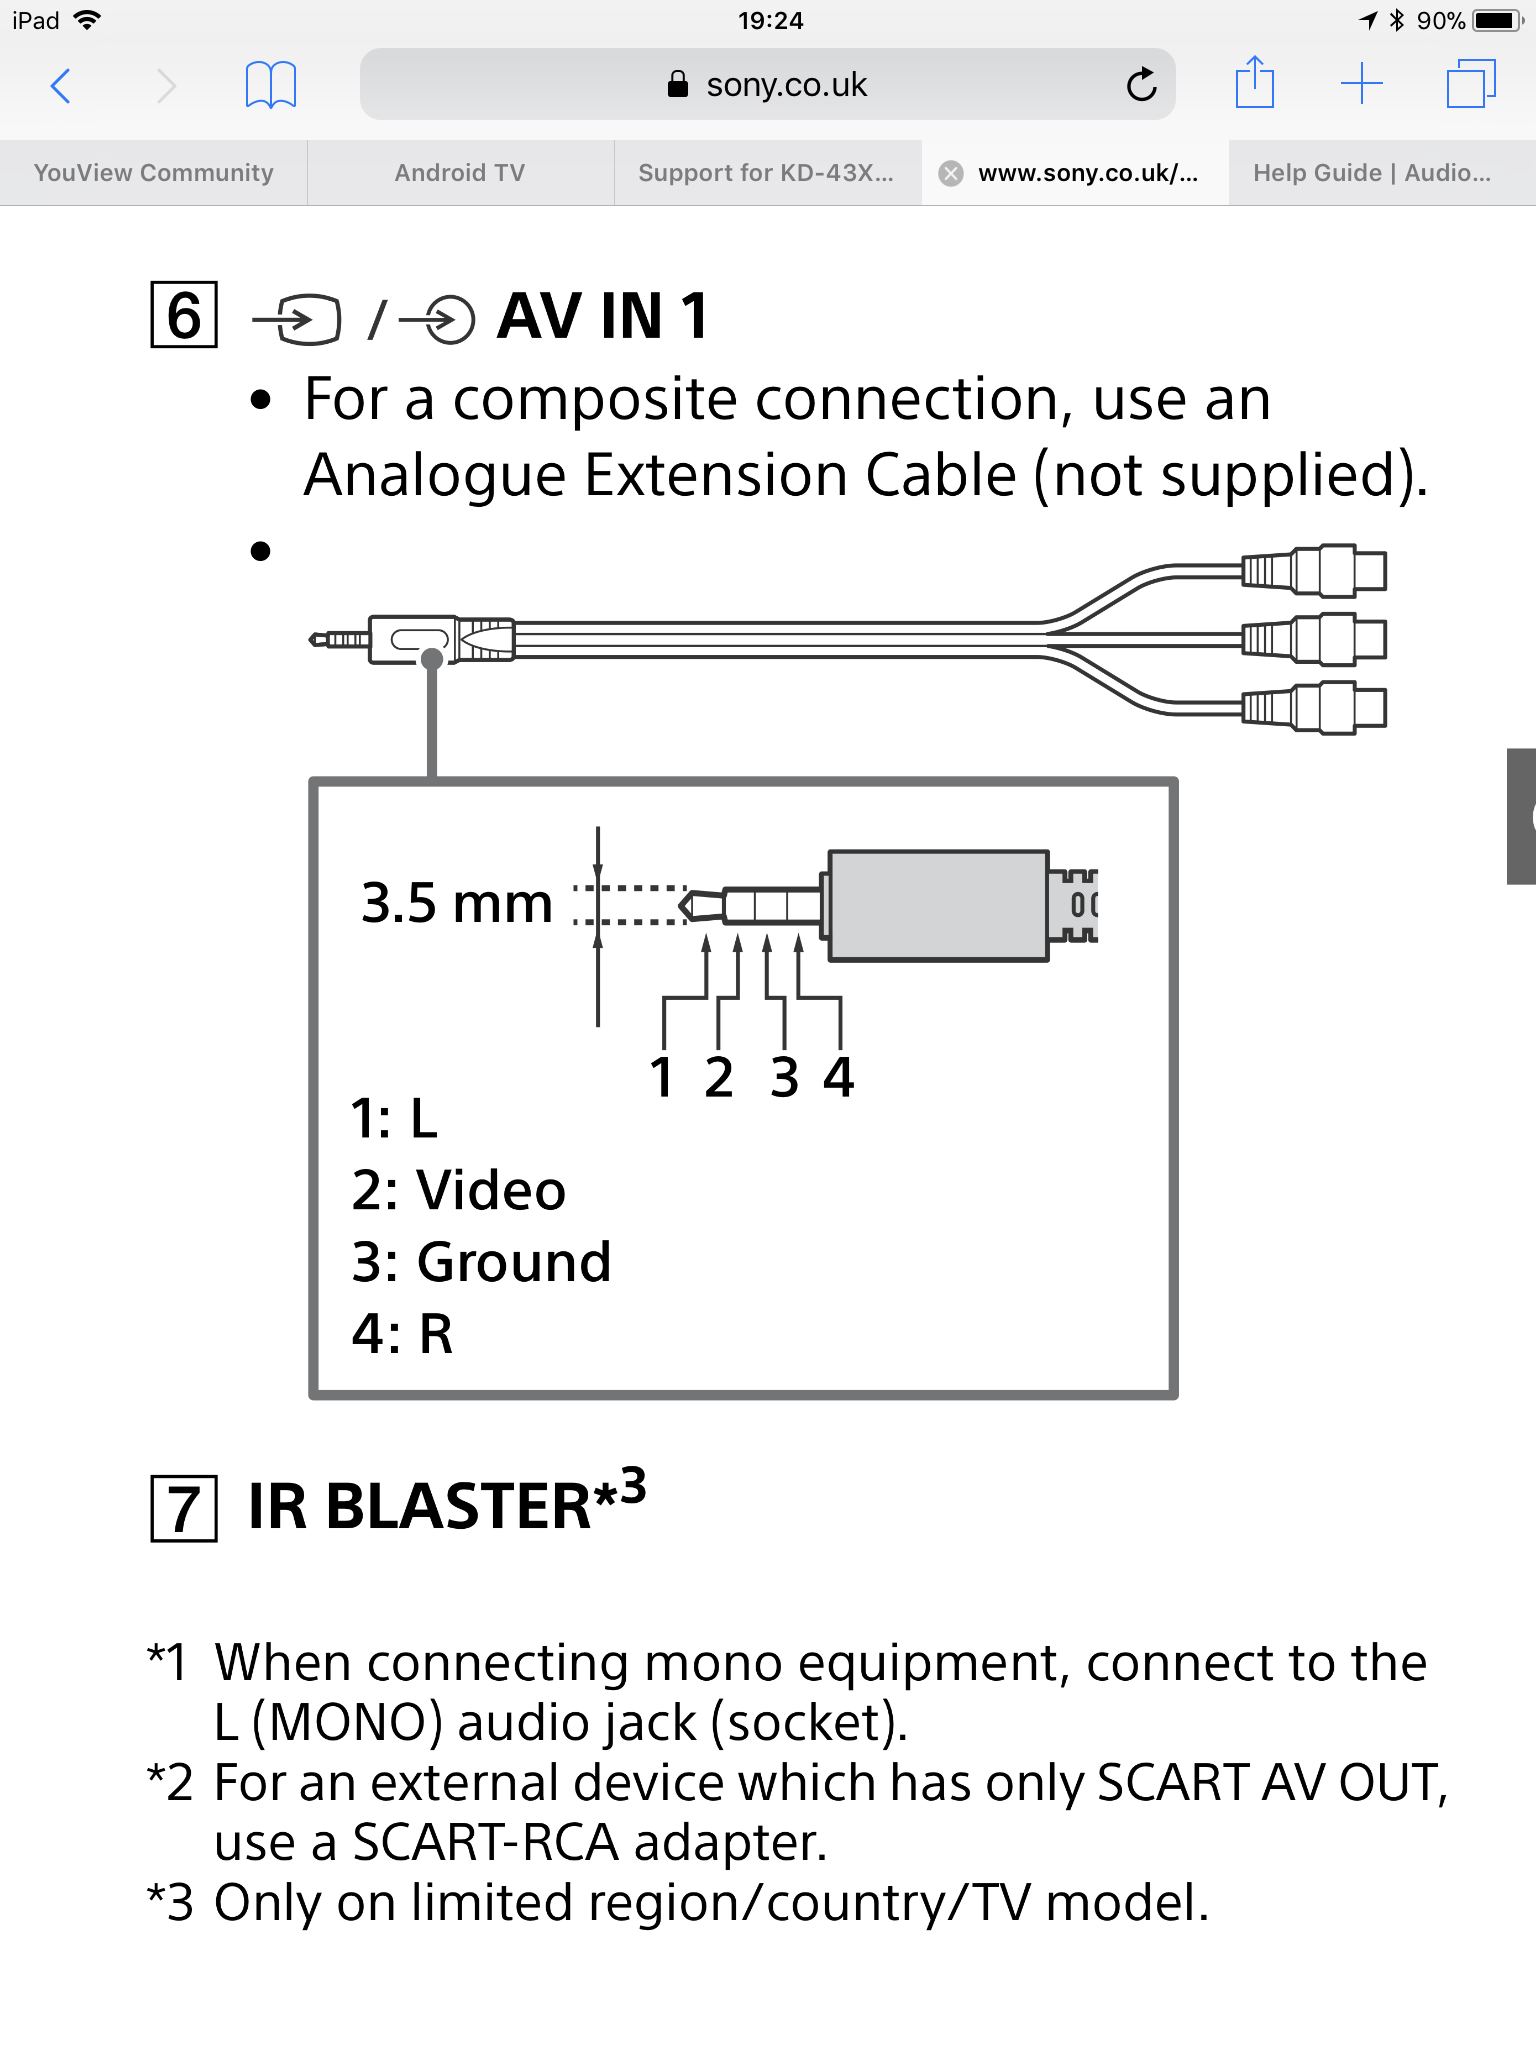 A V Wiring Diagram 3 5mm Jack Worksheet And Audio Cable Analog Av Adapter For Composite Input On Sony Br Rh Community Co Uk Scheme Headphone